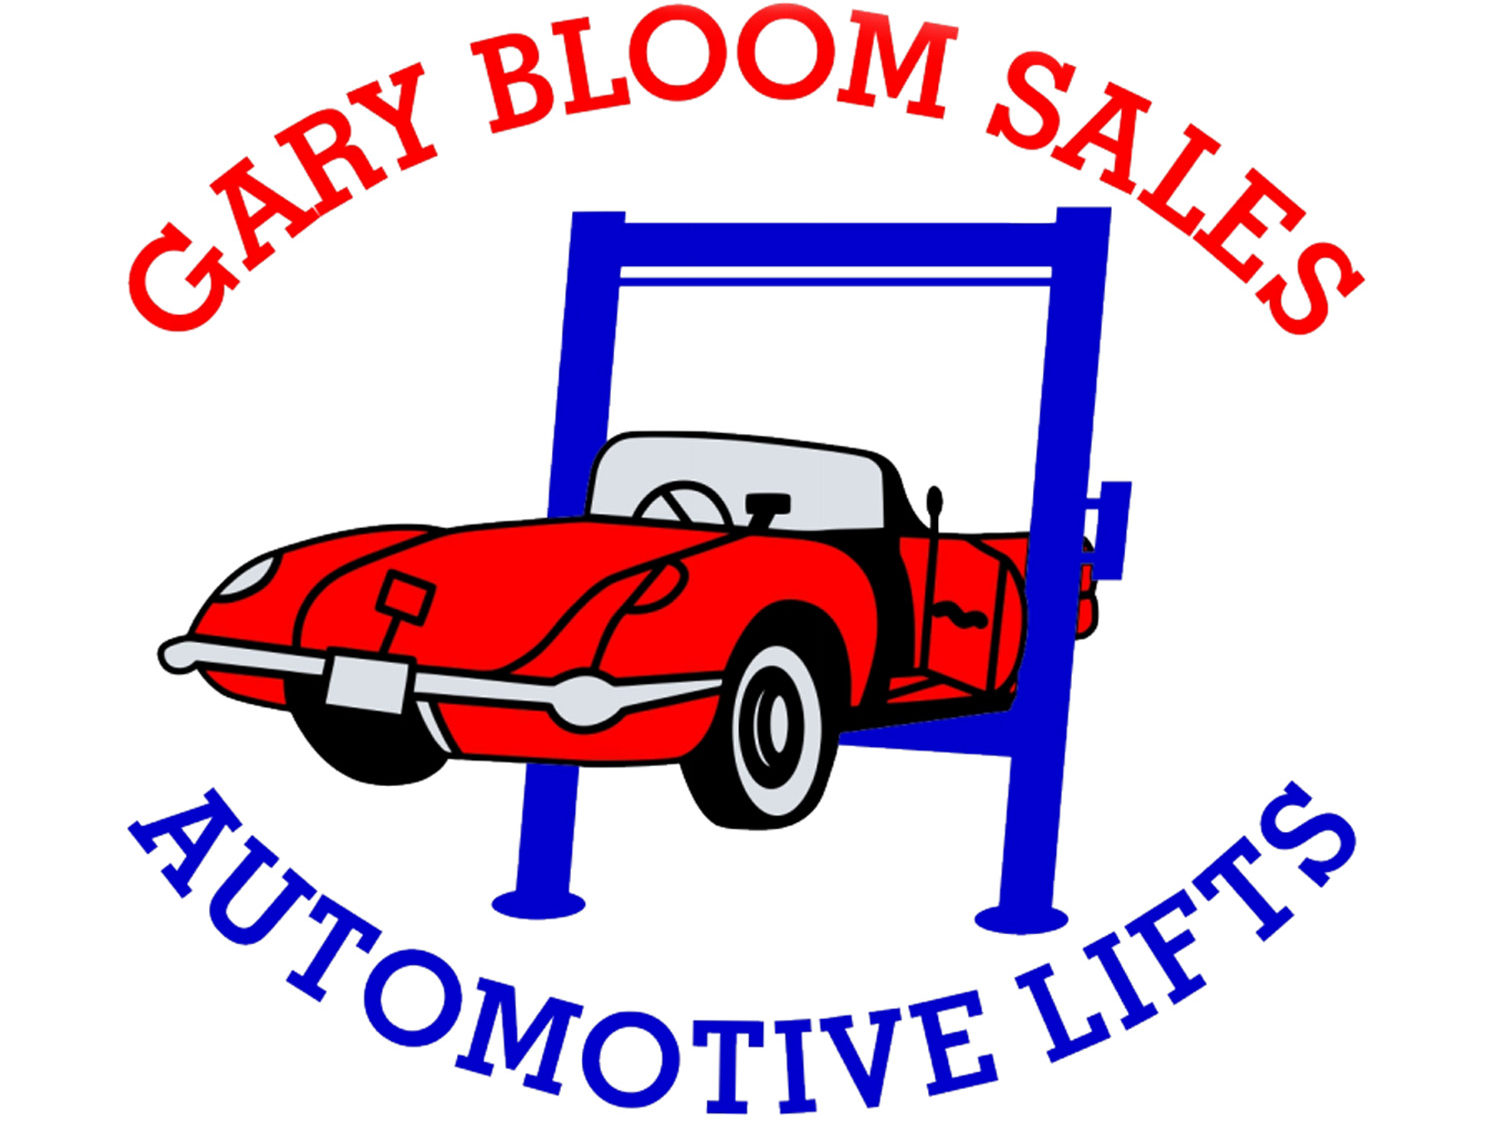 Gary Bloom Sales, Inc.